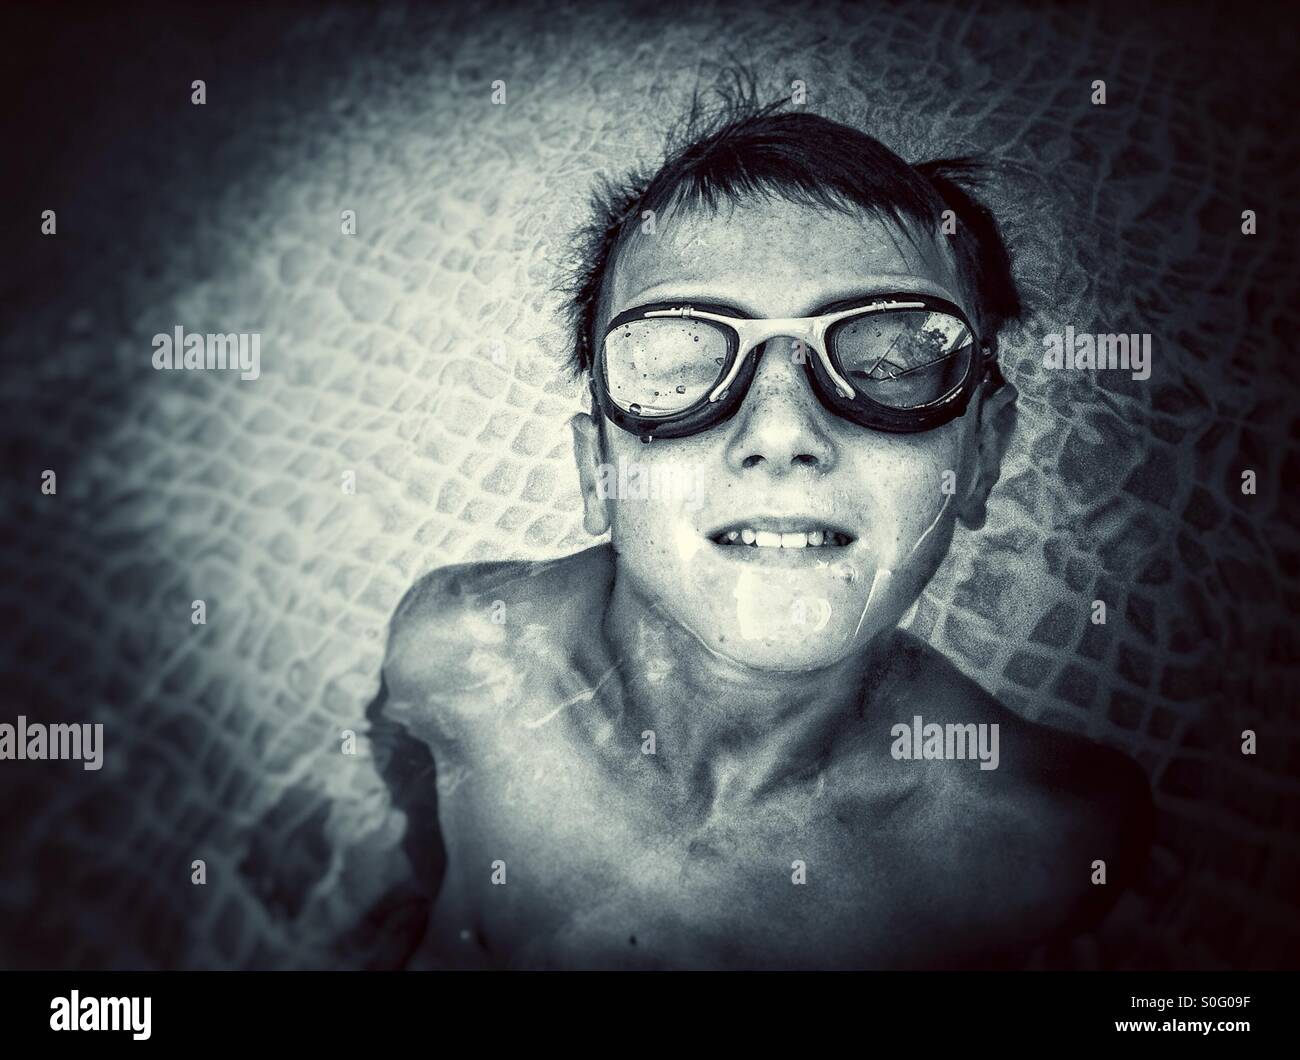 Boy with goggles looking at the camera inside a swimming pool Stock Photo